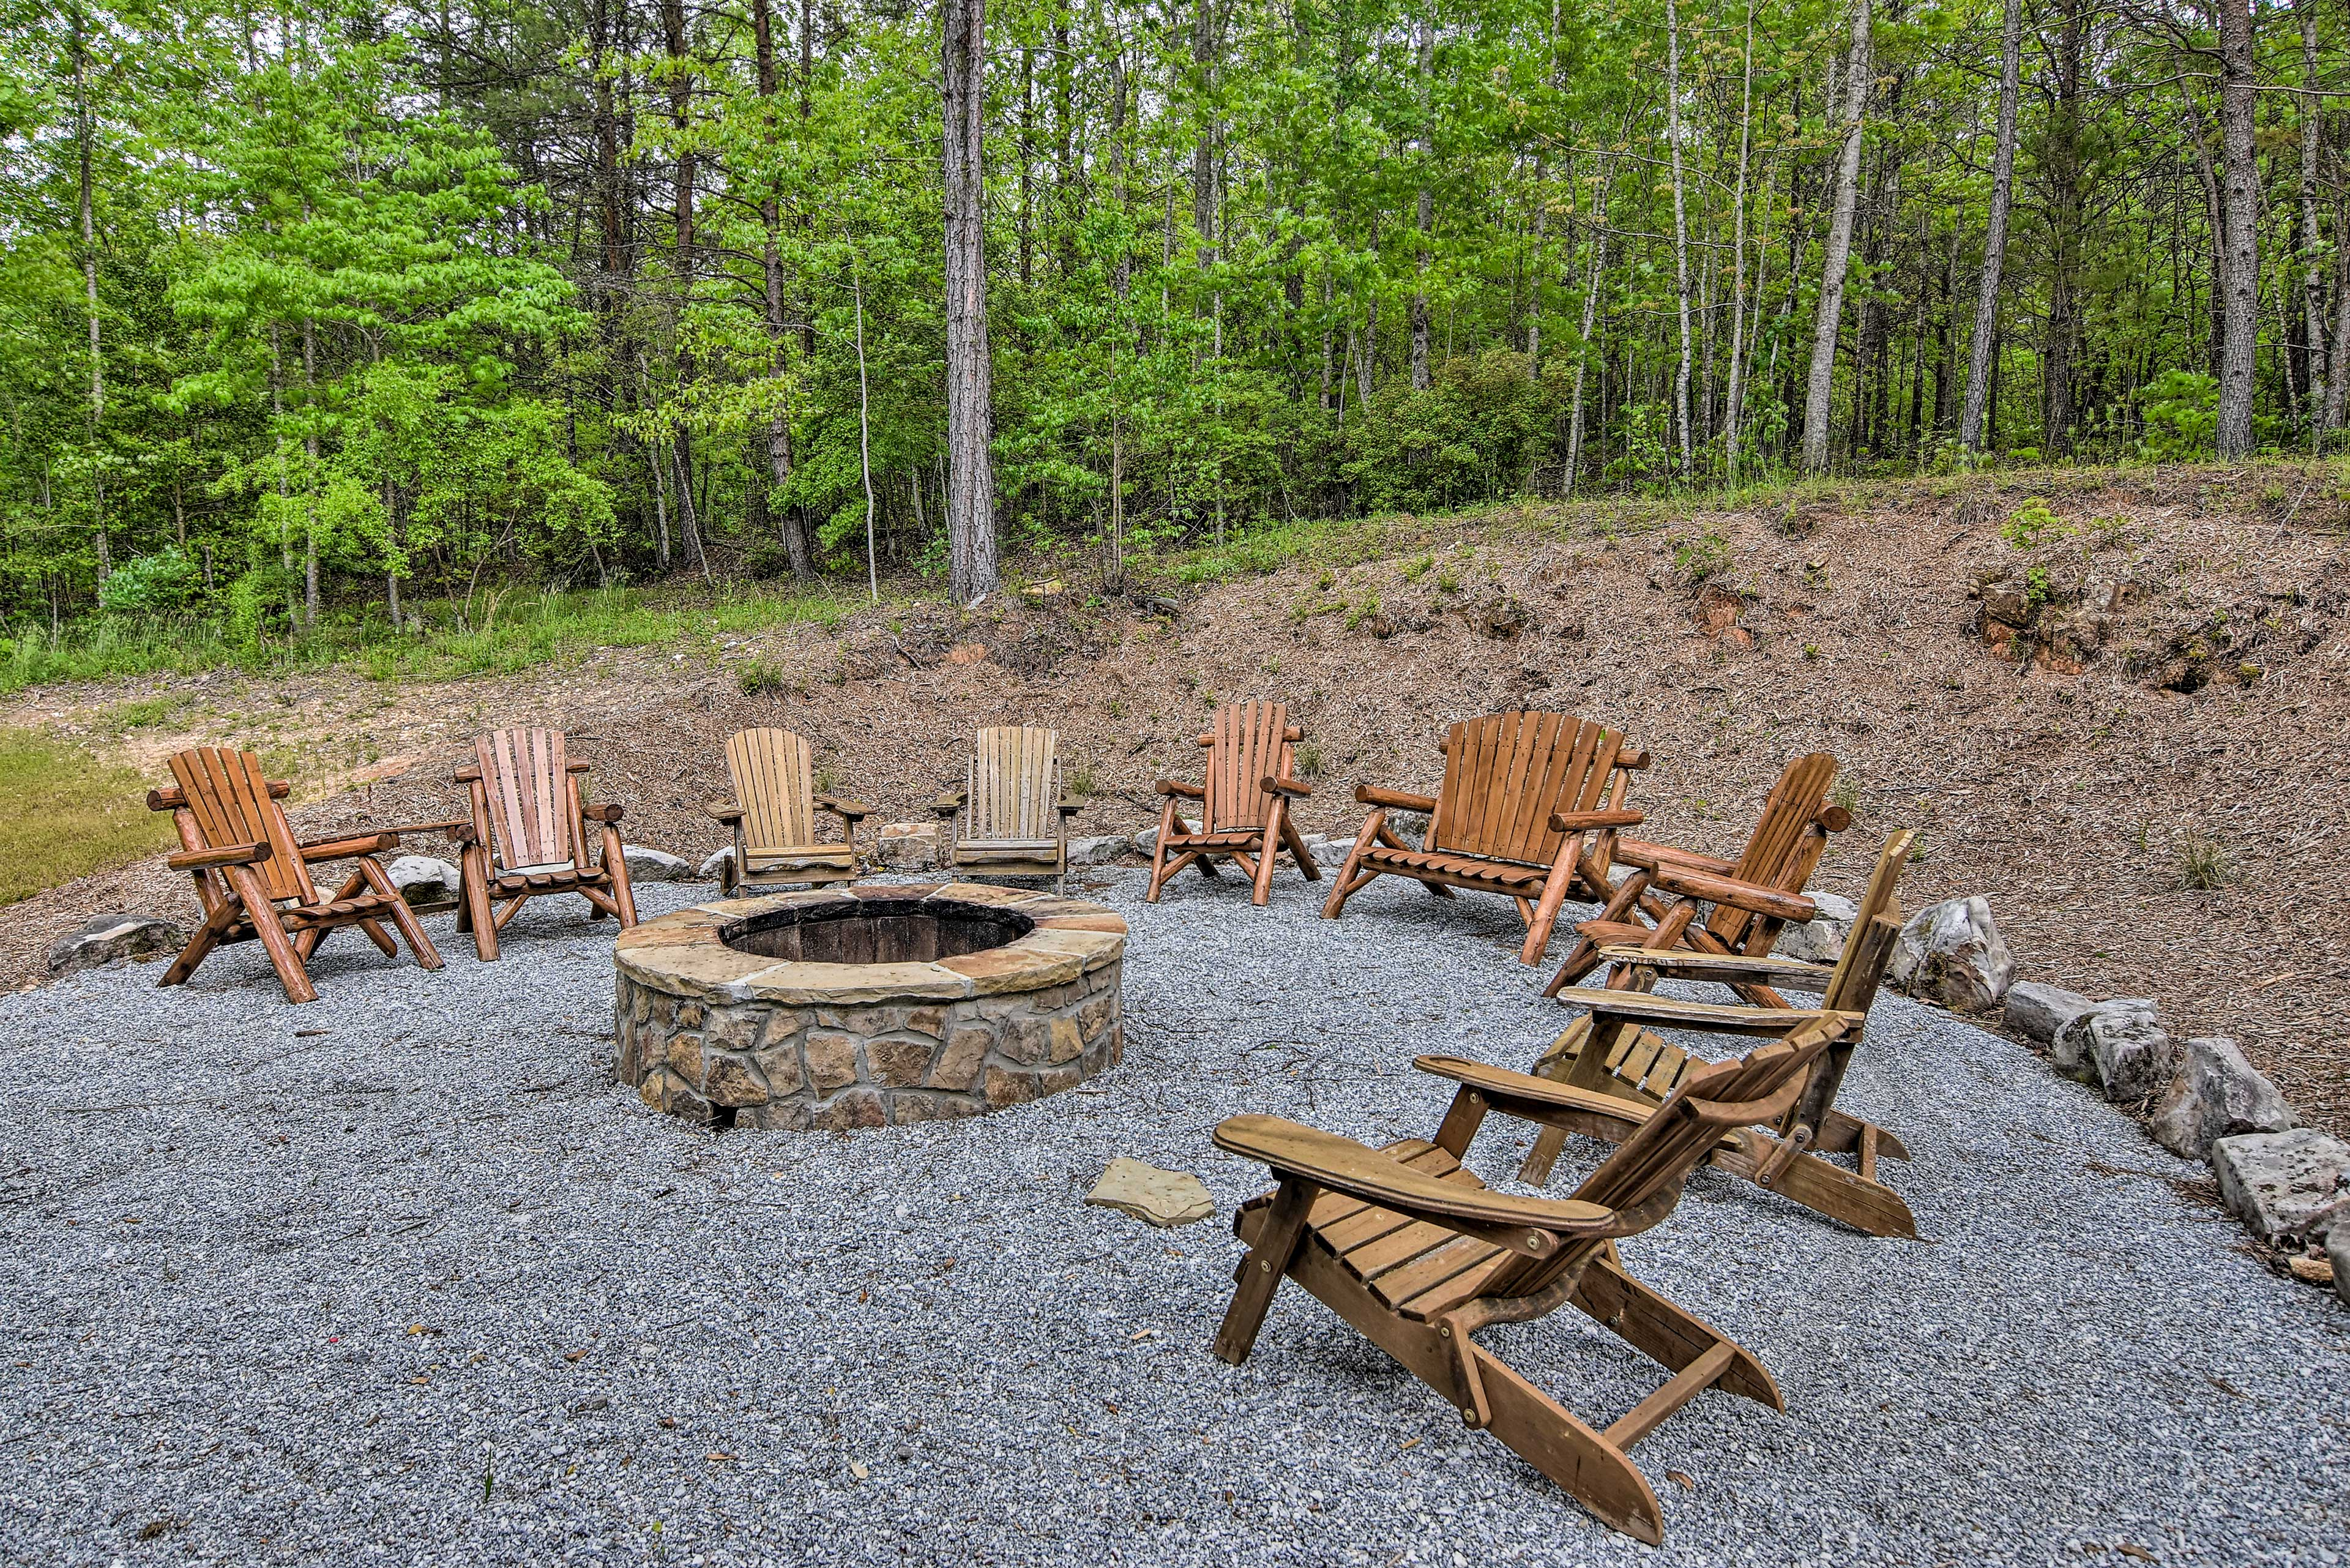 The 3-bed, 2-bath home offers outdoor living space including a fire pit.